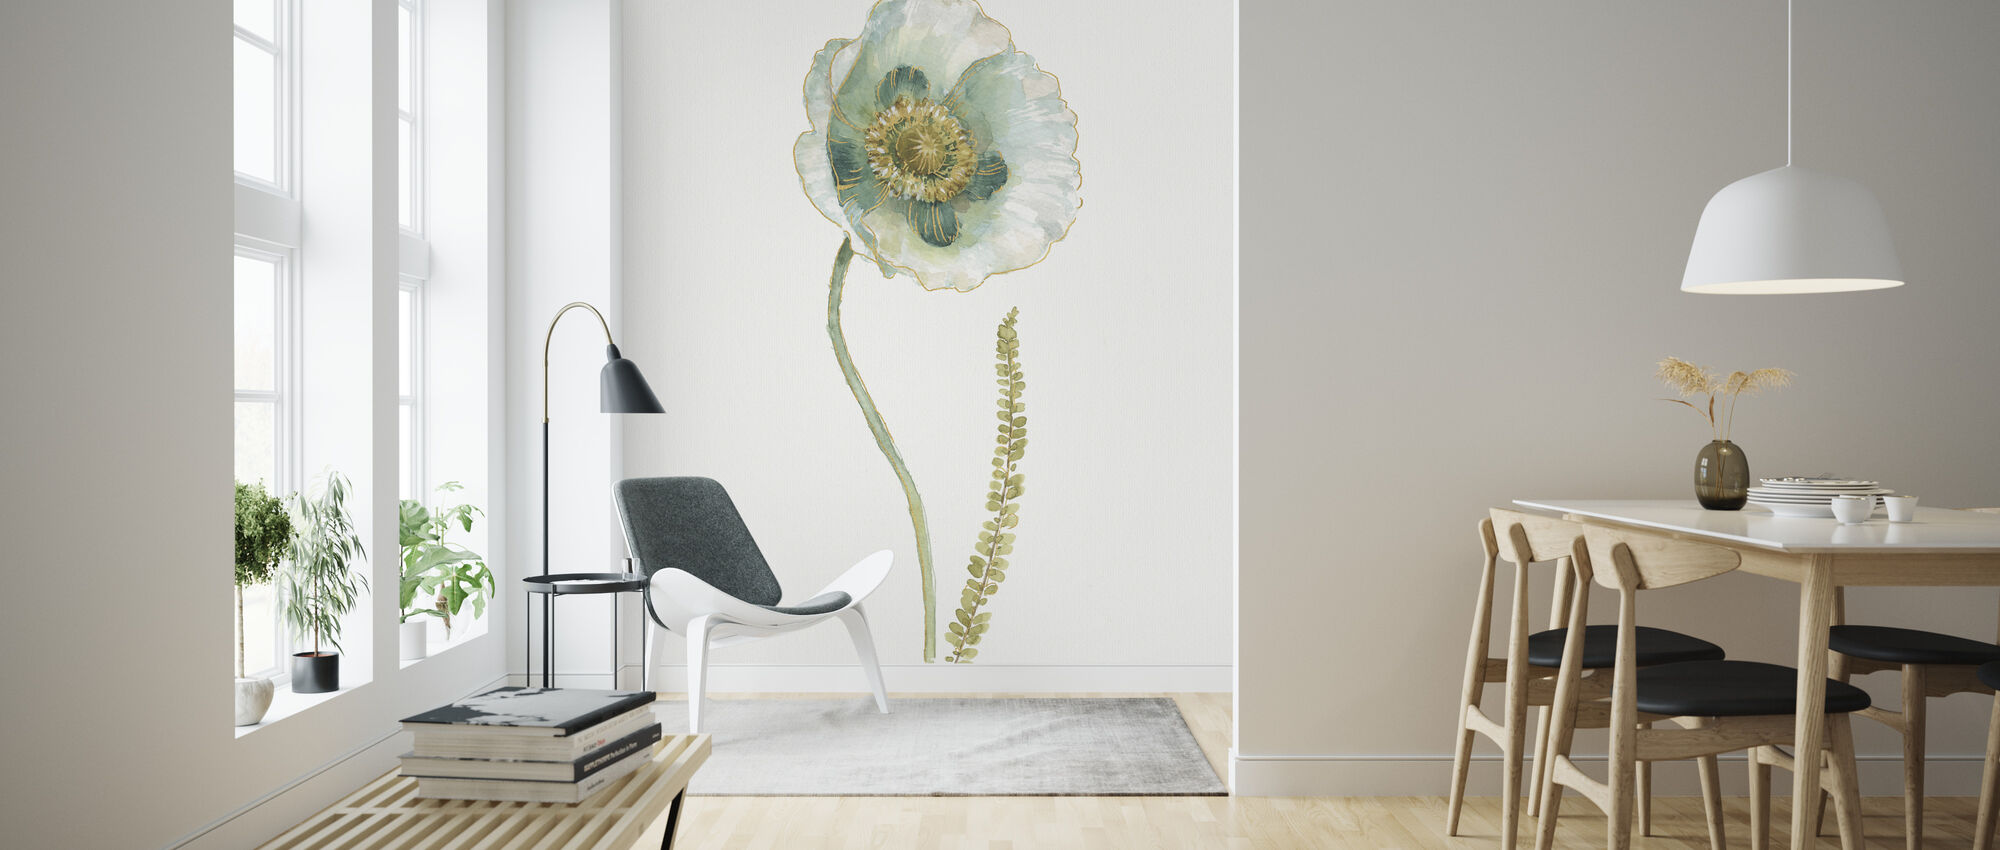 My Greenhouse Single Poppy I - Wallpaper - Living Room